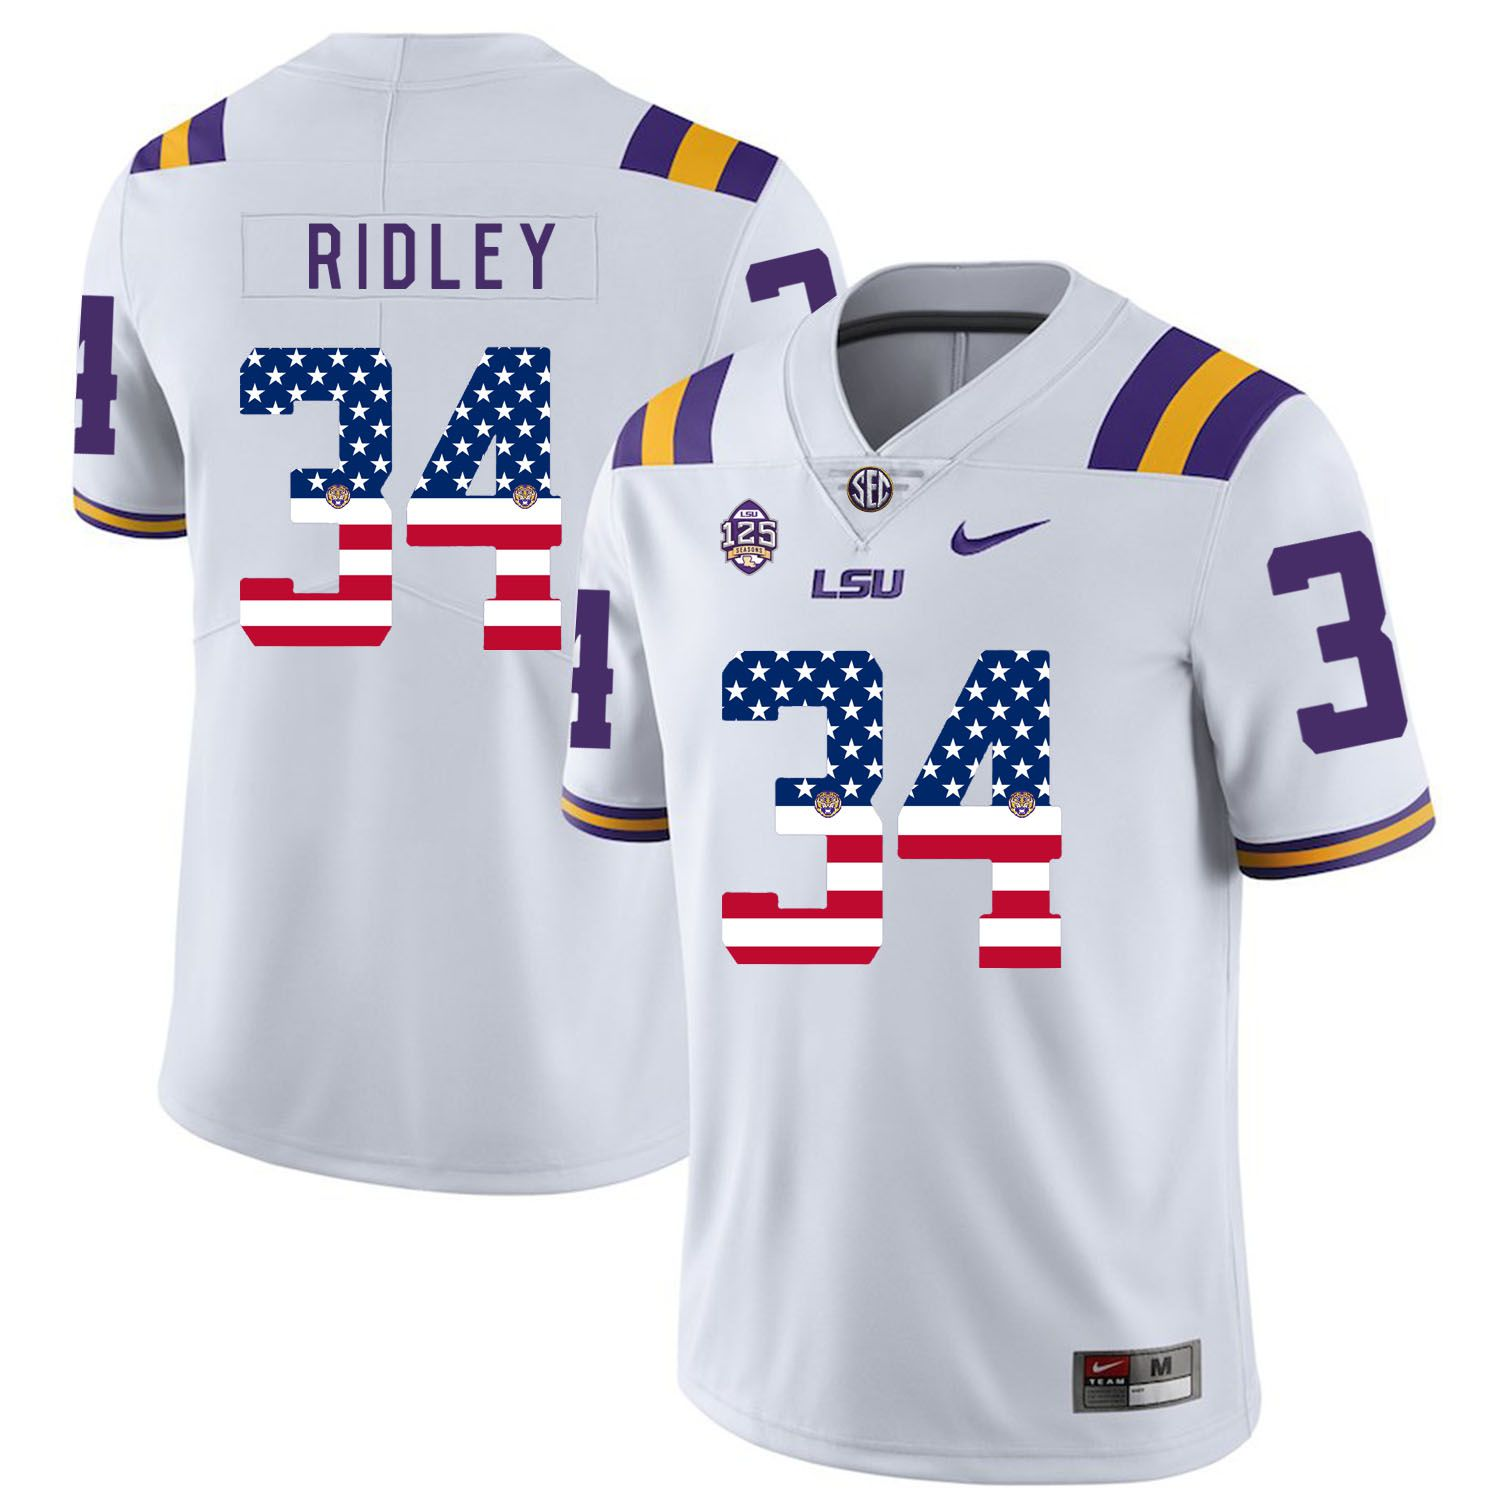 Men LSU Tigers 34 Ridley White Flag Customized NCAA Jerseys